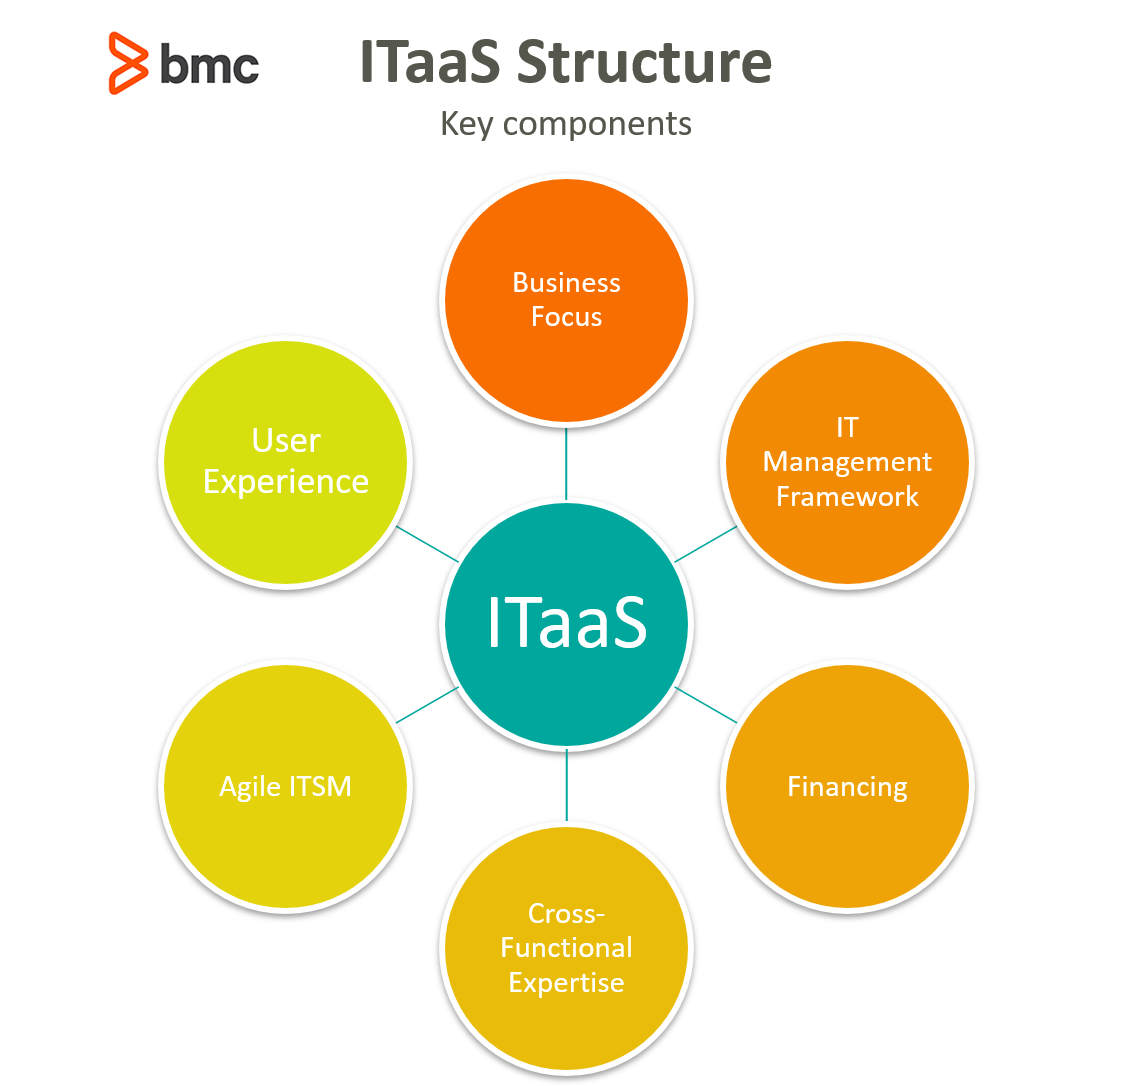 ITaas Structure